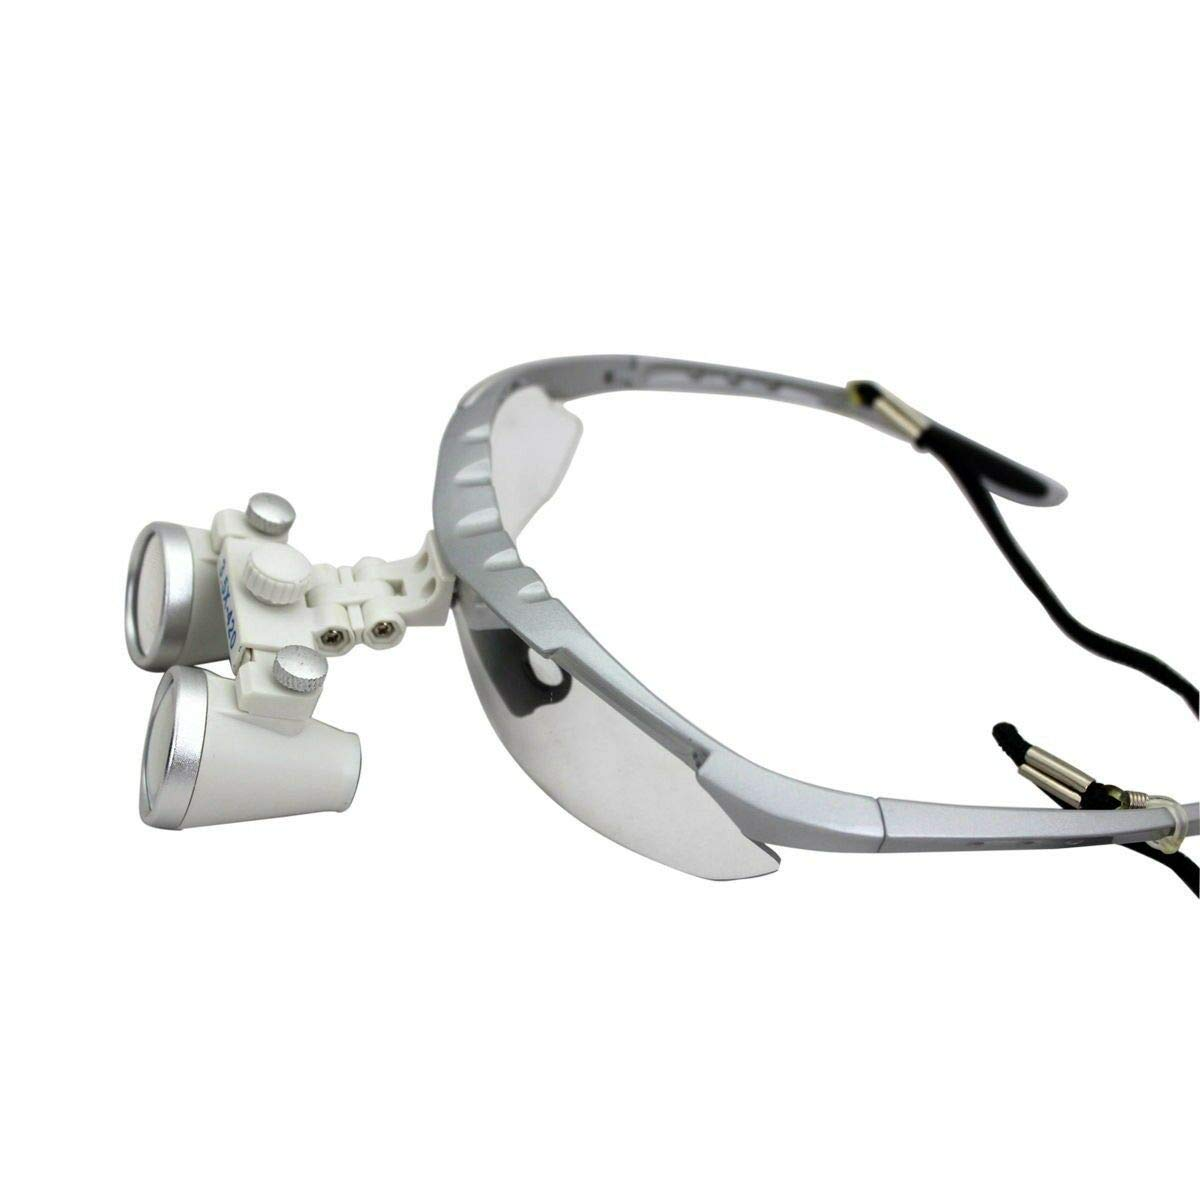 Portable 3.5X 420mm Magnifier Dental Surgical Loupes Lens Optical Glasses with Protective Case (US Shipping)